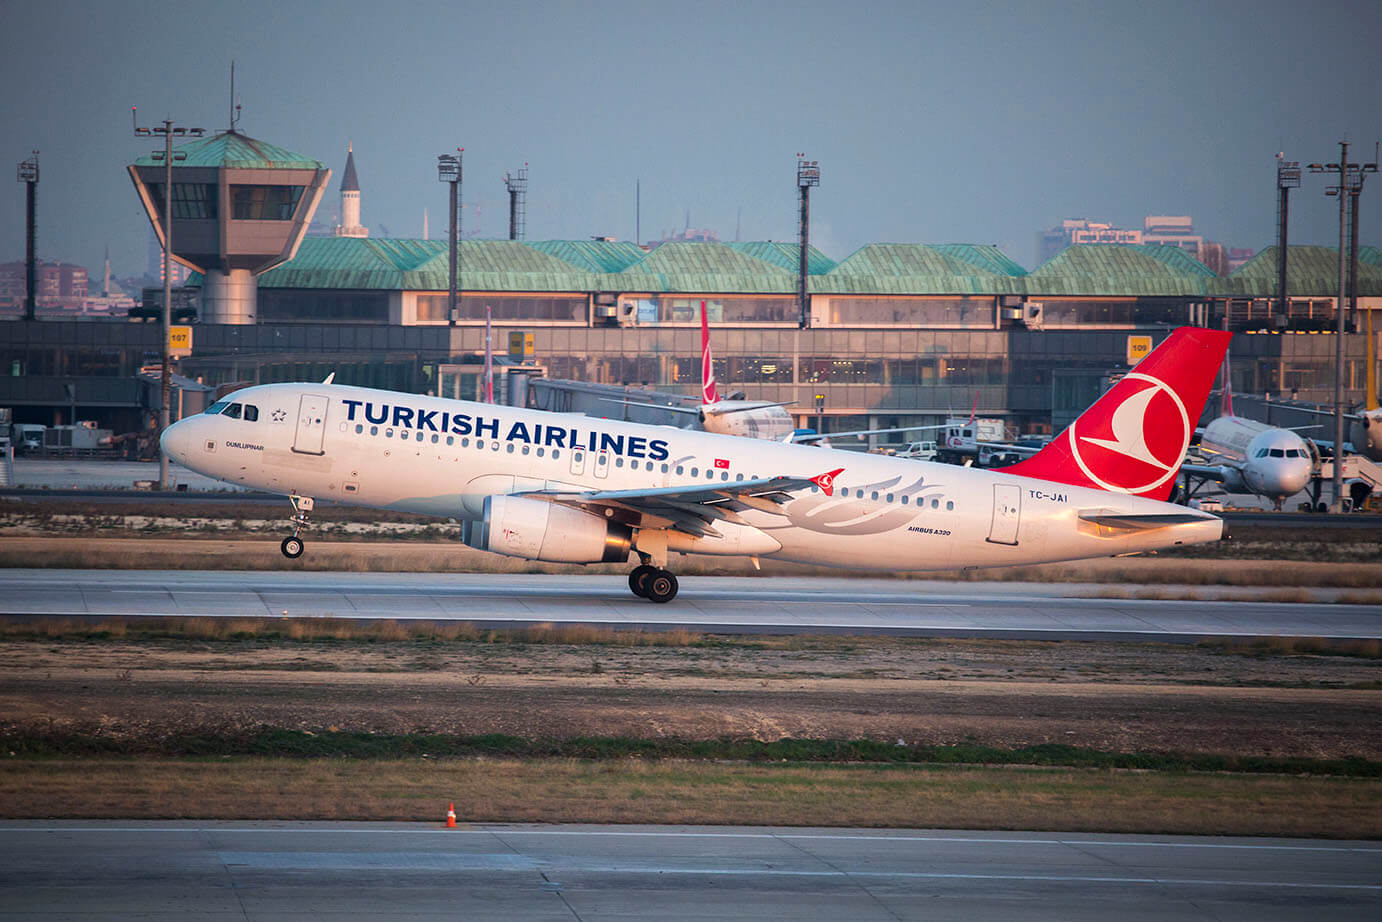 TURKISH AIRLINES FLYING ALL AROUND THE WORLD